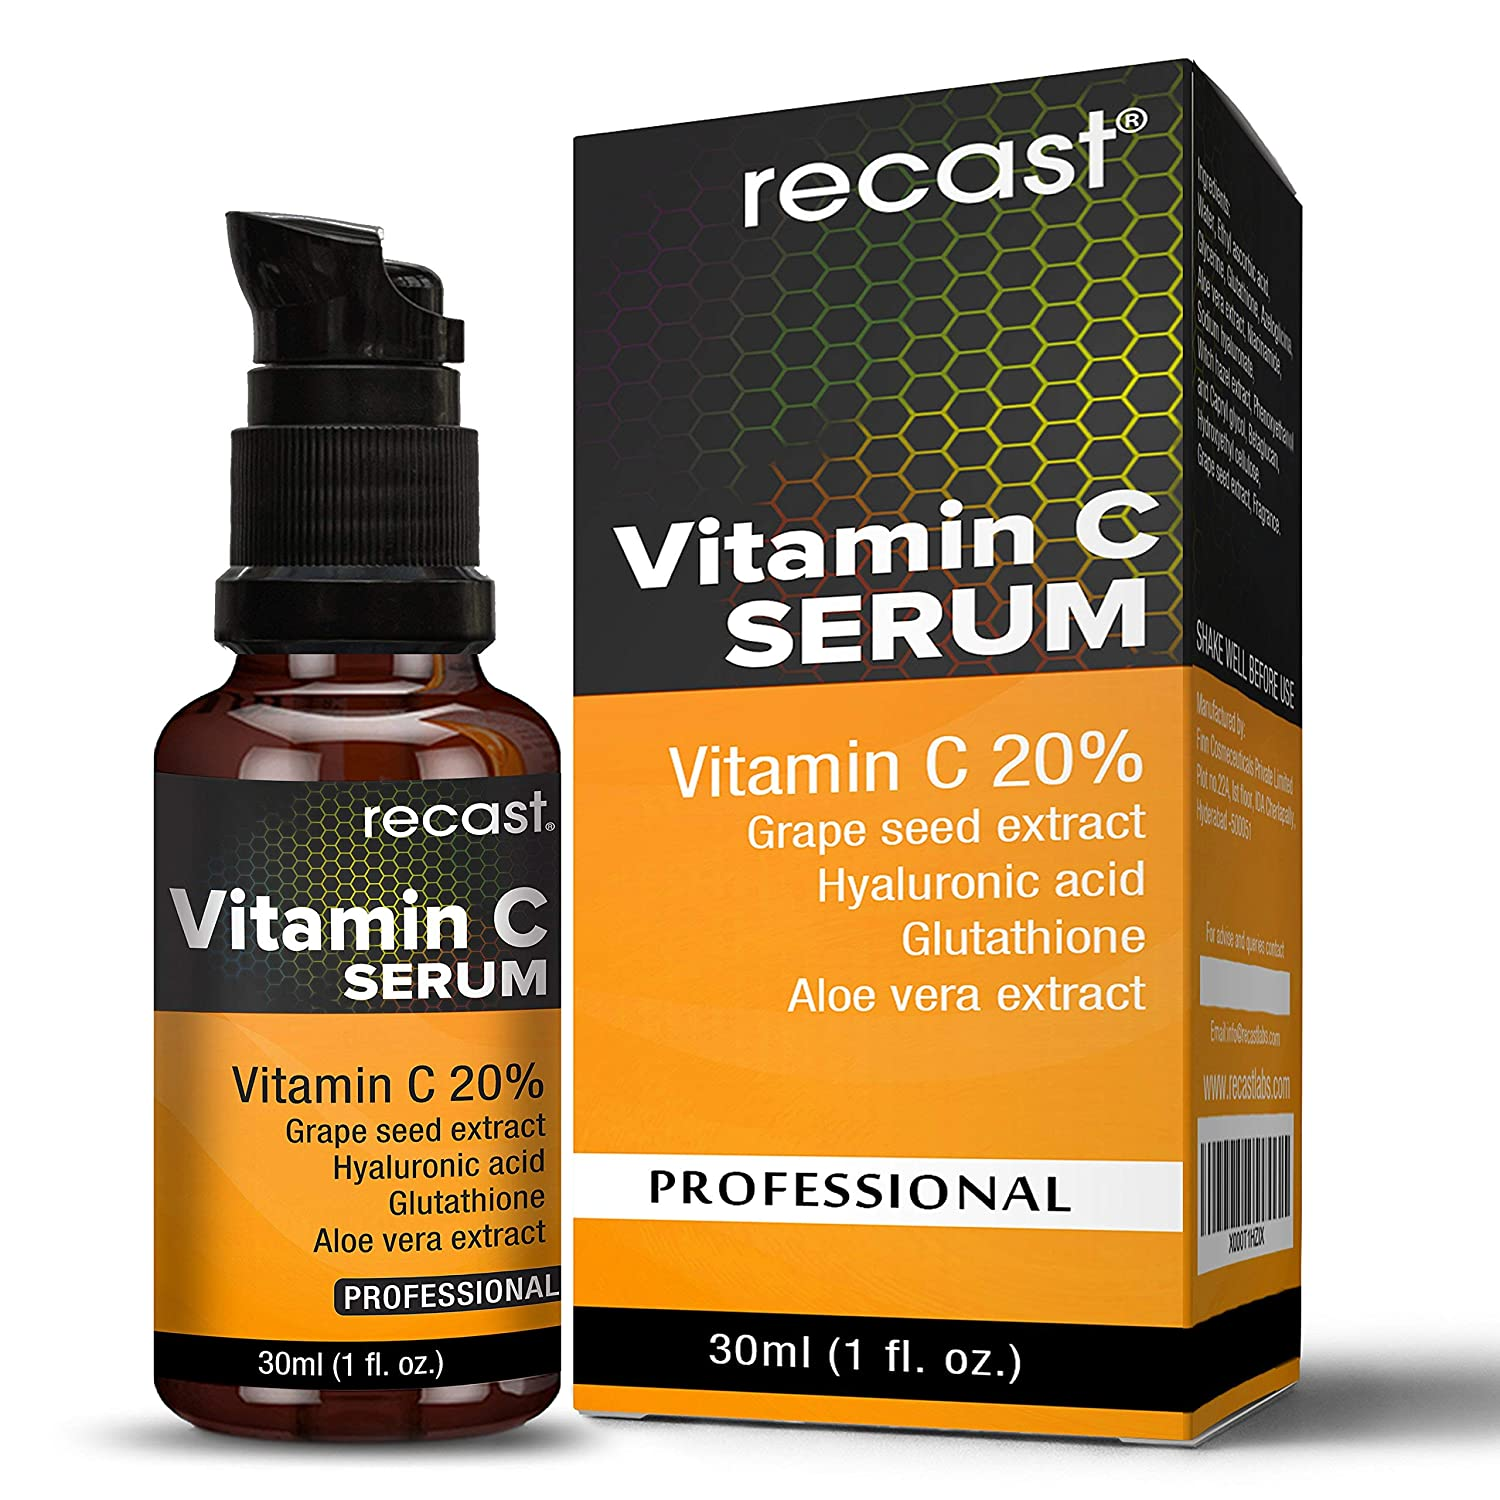 Vitamin C Serum For Face From Recast